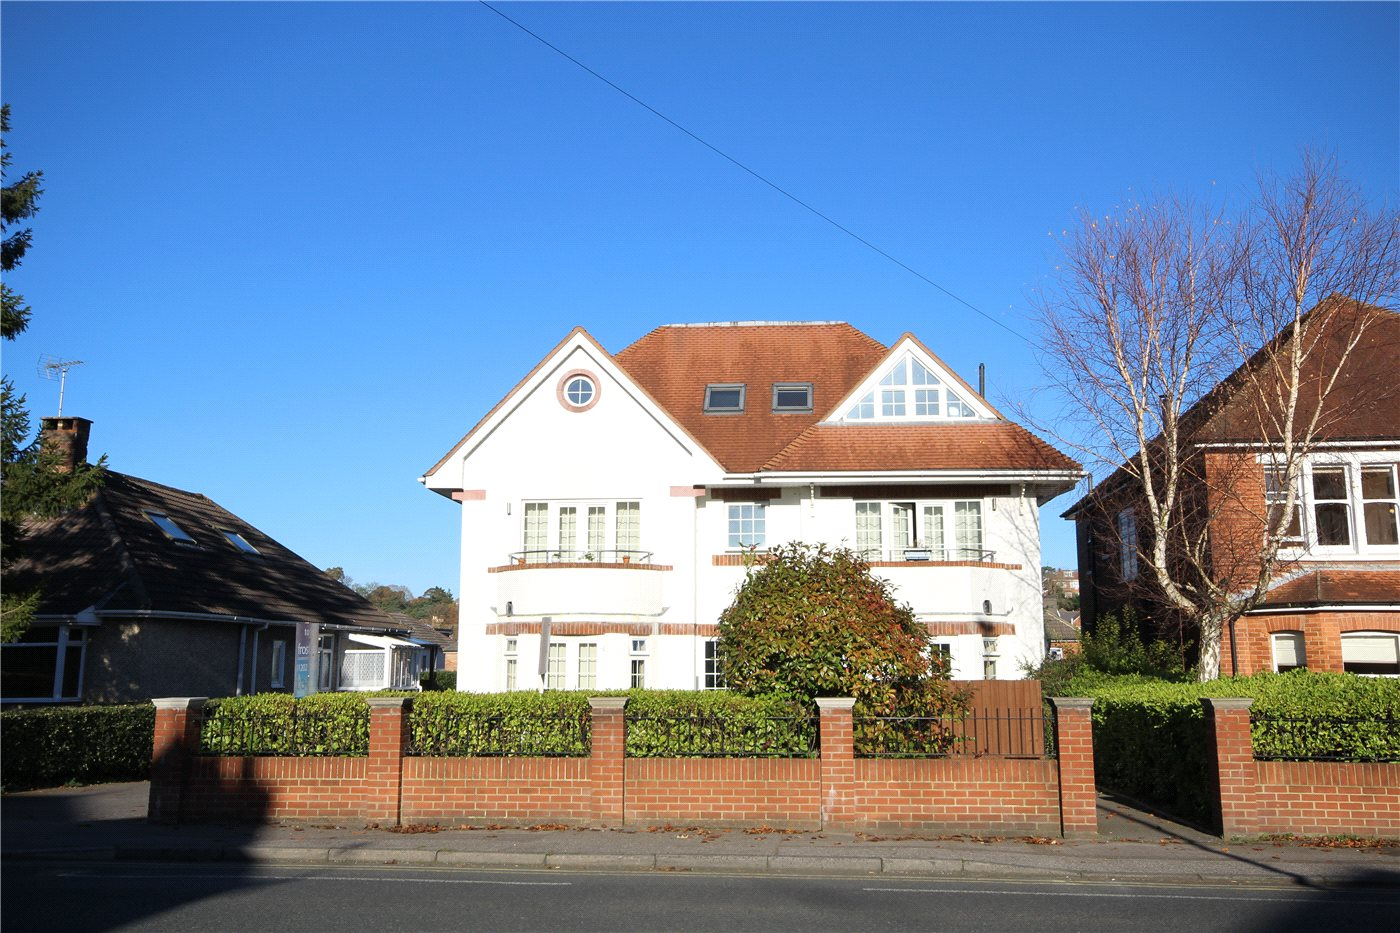 3 Bedrooms Penthouse Flat for sale in Penn Hill Avenue, Lower Parkstone, Poole, Dorset, BH14